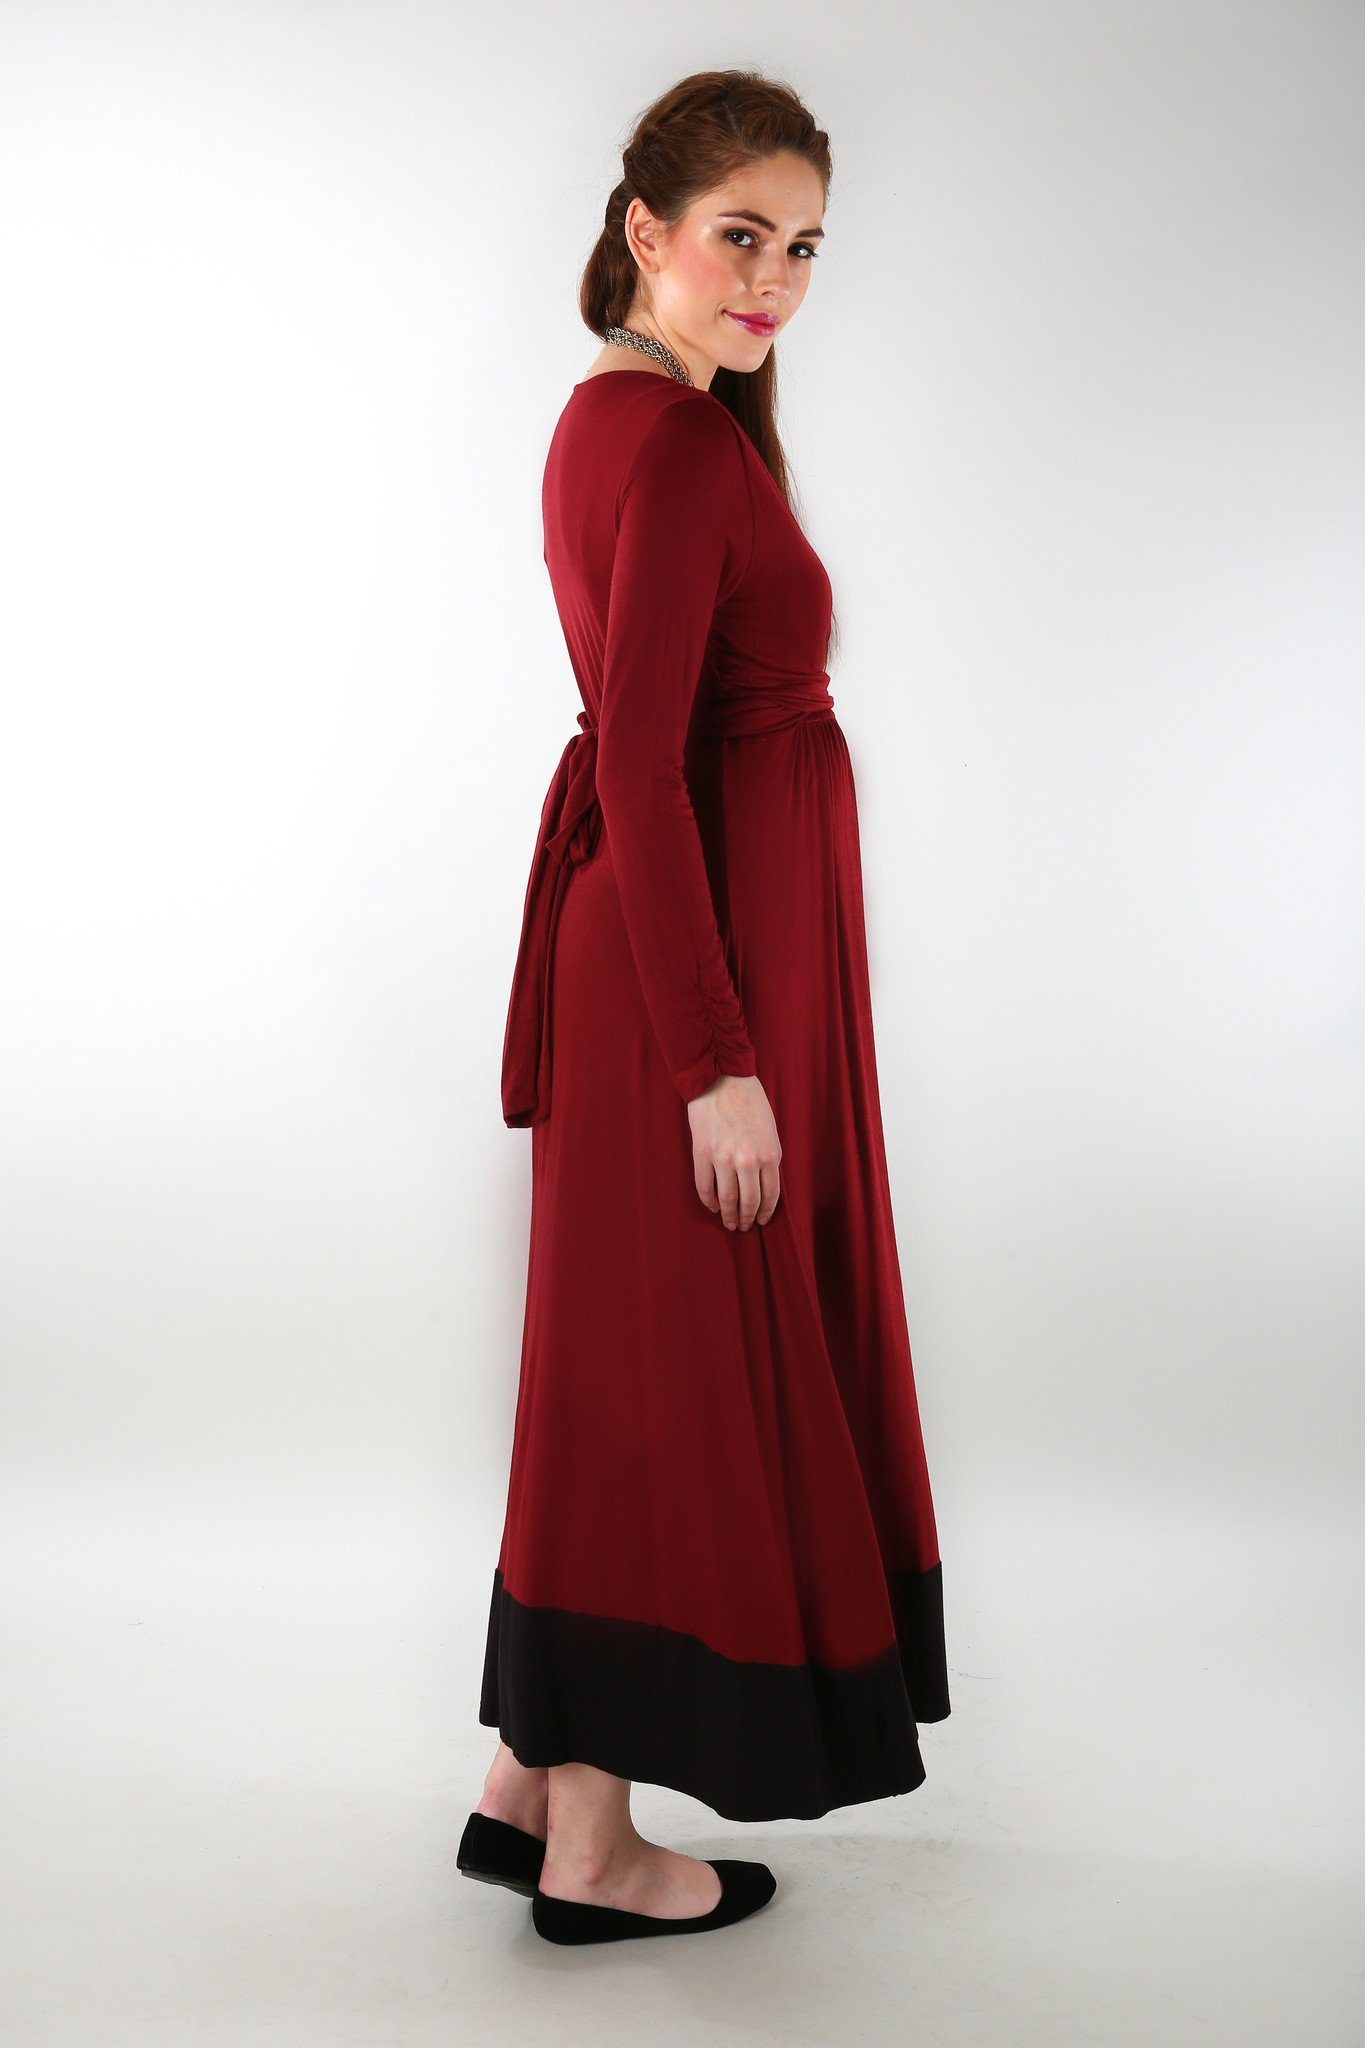 Elegant Wine Front Wrap Maternity Dress - MOMZJOY.COM - 2